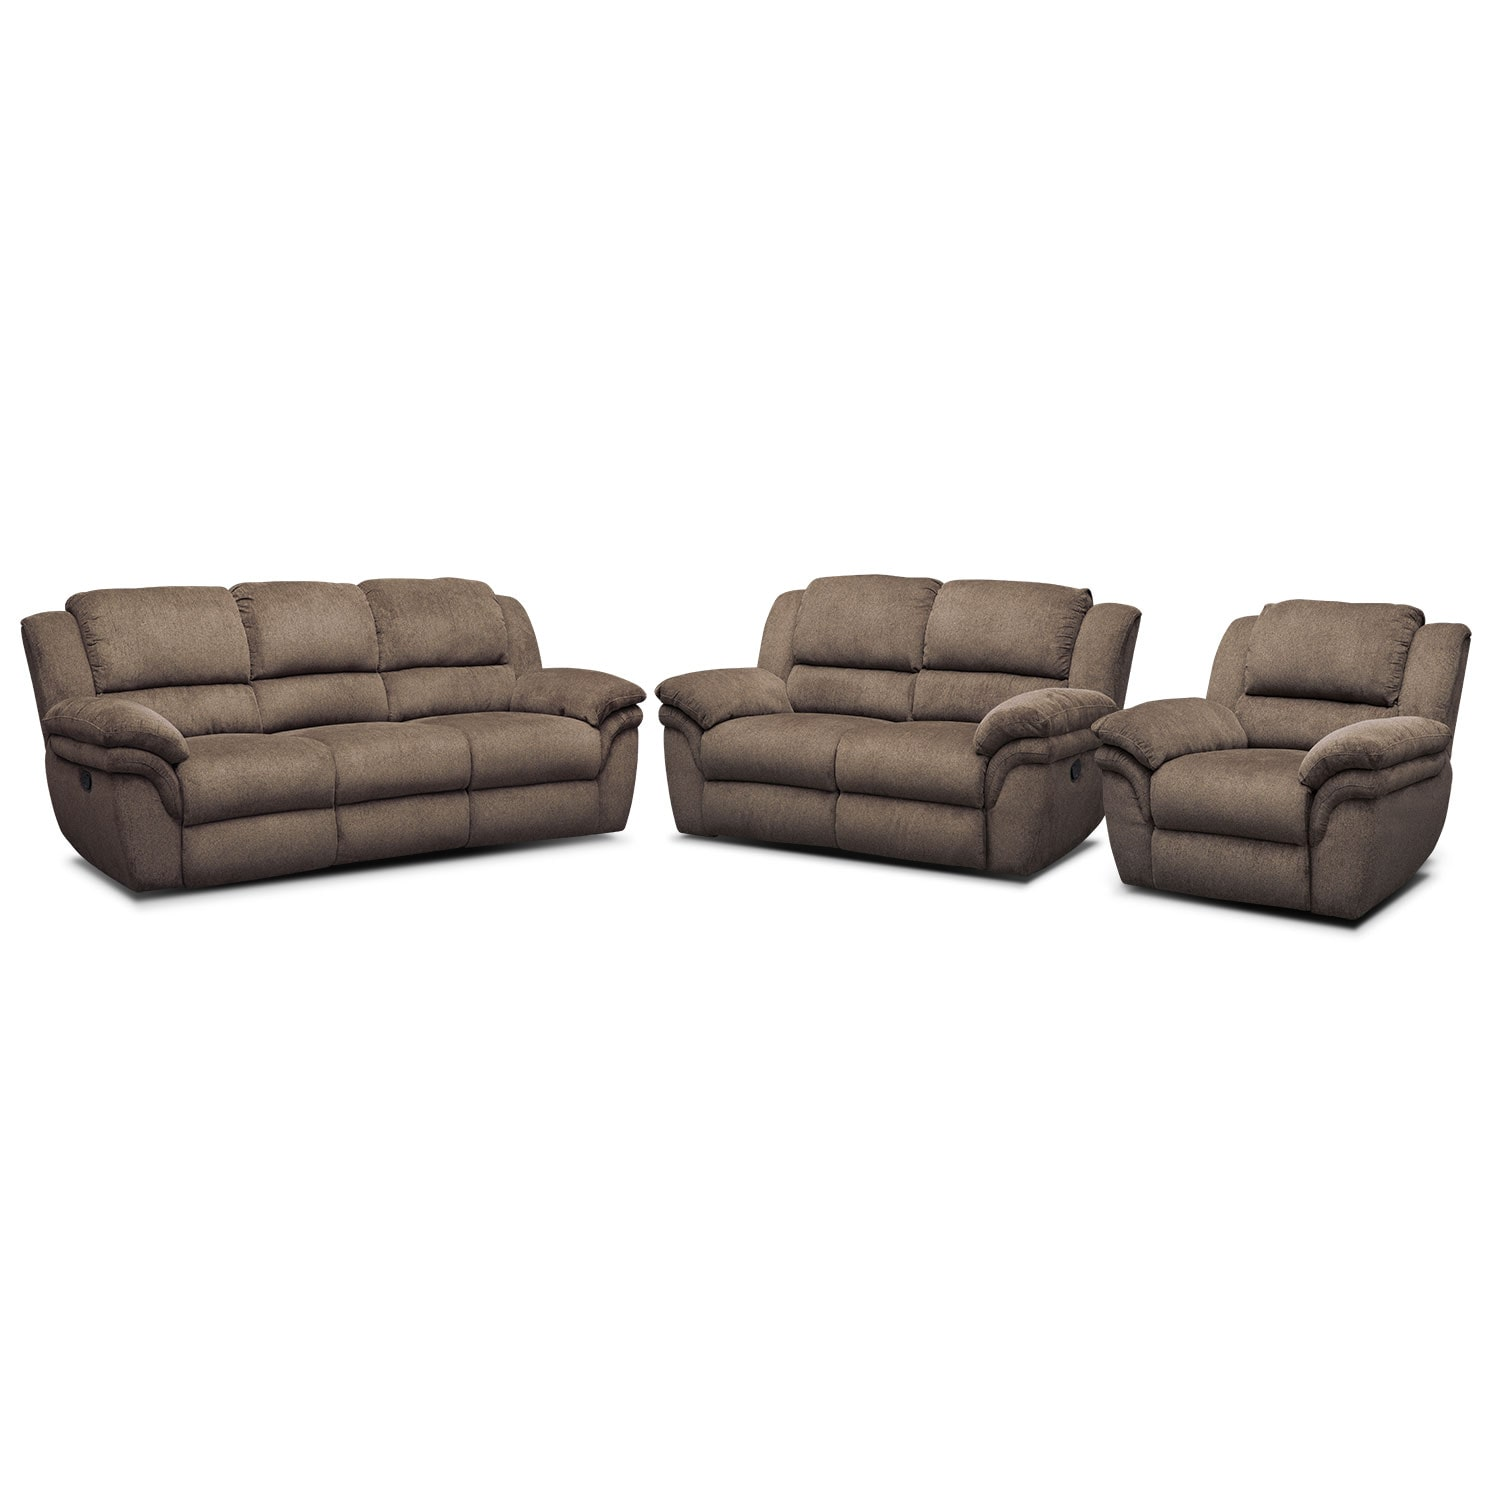 Living Room Furniture - Omni Dual Manual-Reclining Sofa, Dual Manual-Reclining Loveseat and Manual Recliner Set - Mocha